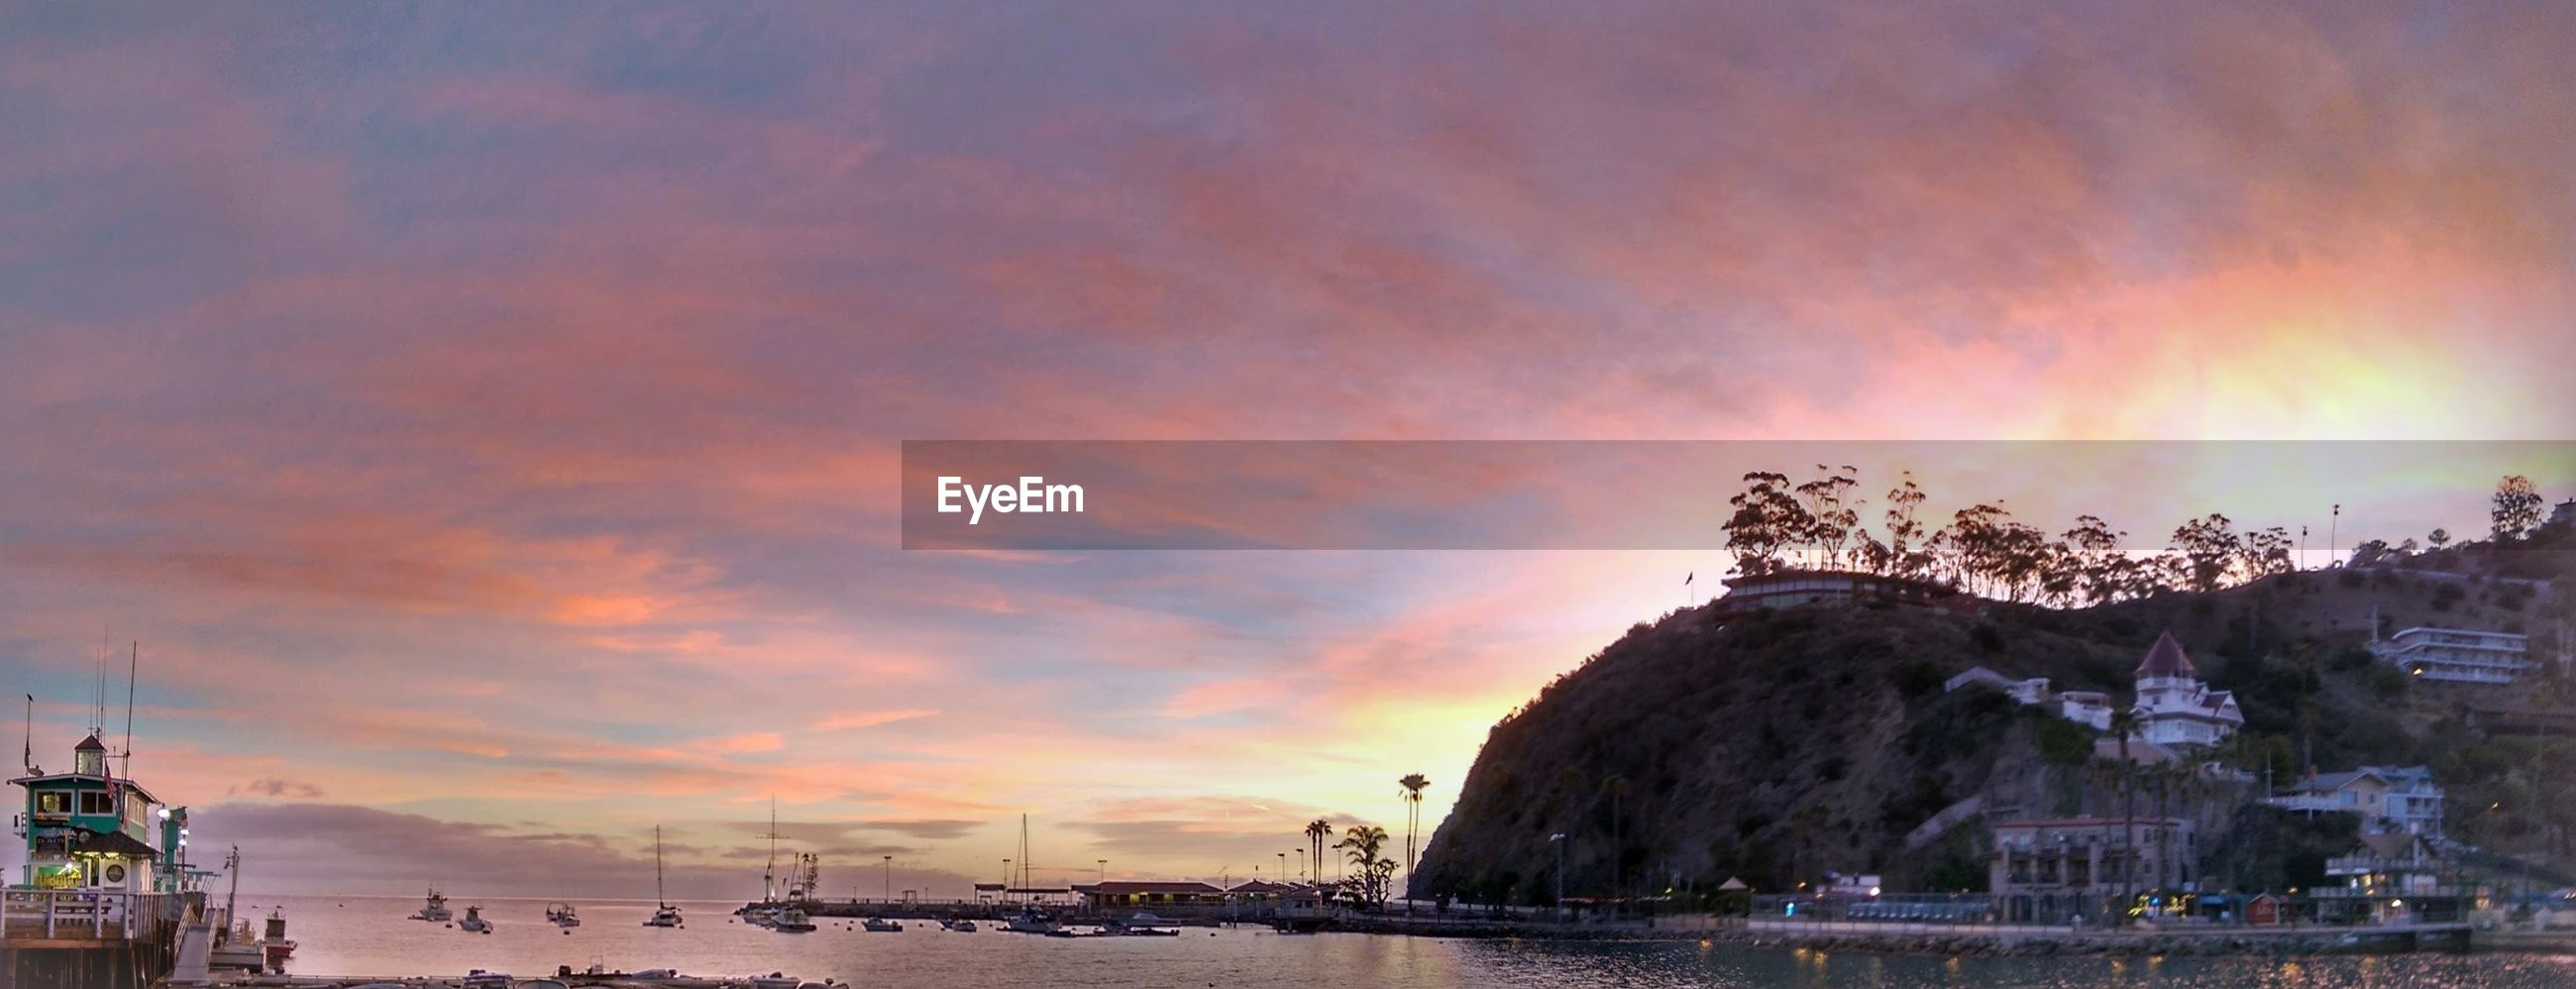 PANORAMIC VIEW OF SEA AGAINST BUILDINGS AT SUNSET